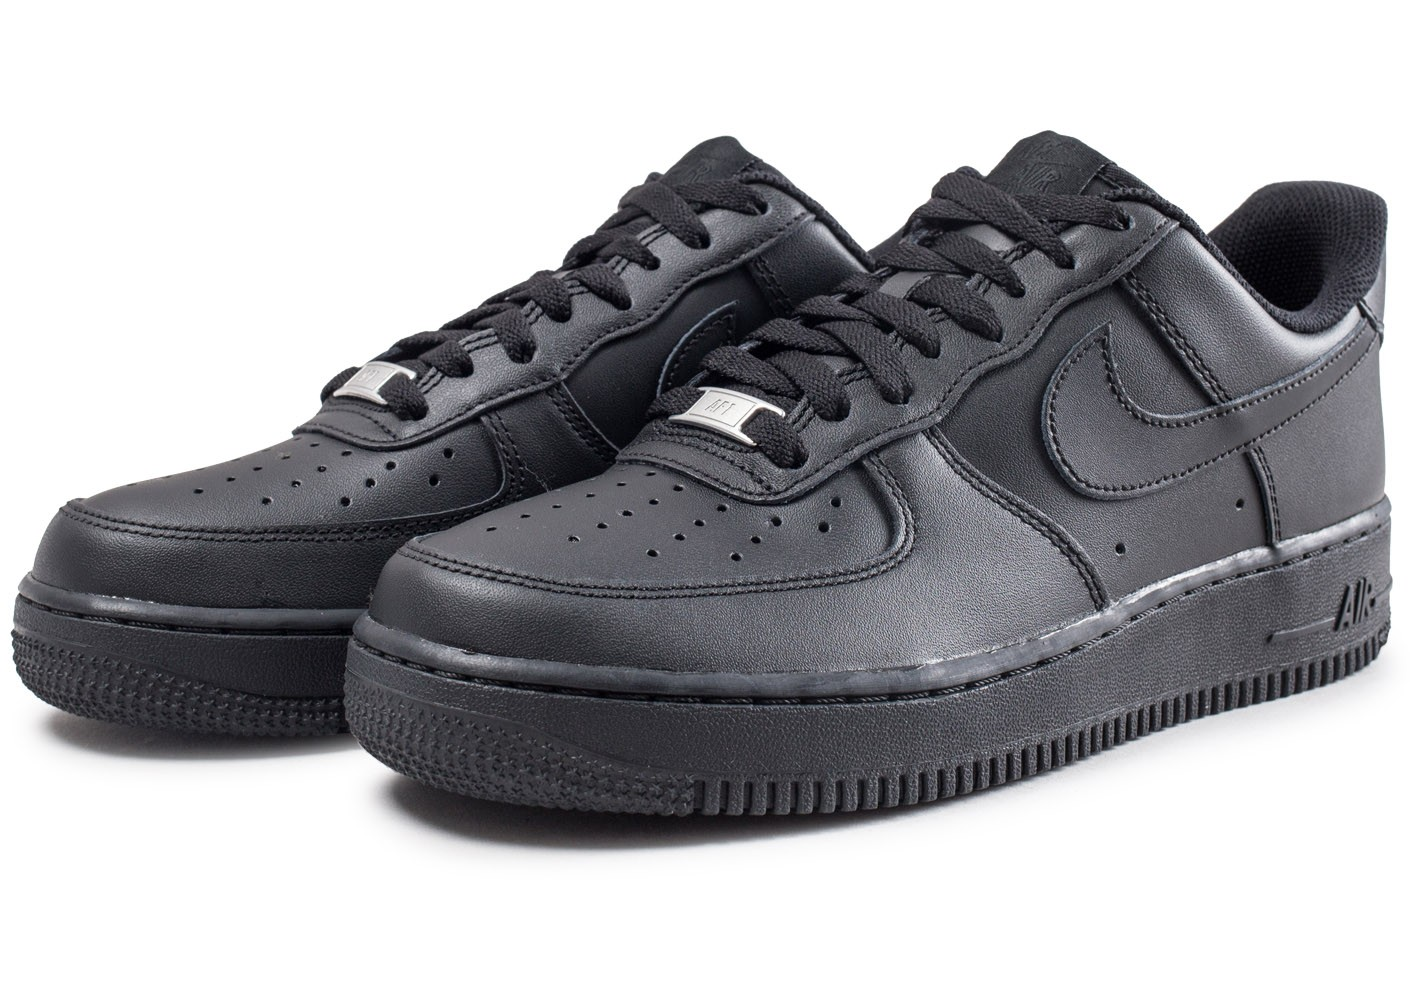 Nike Air Force 1 Noire - Chaussures Baskets homme - Snaidero-usa